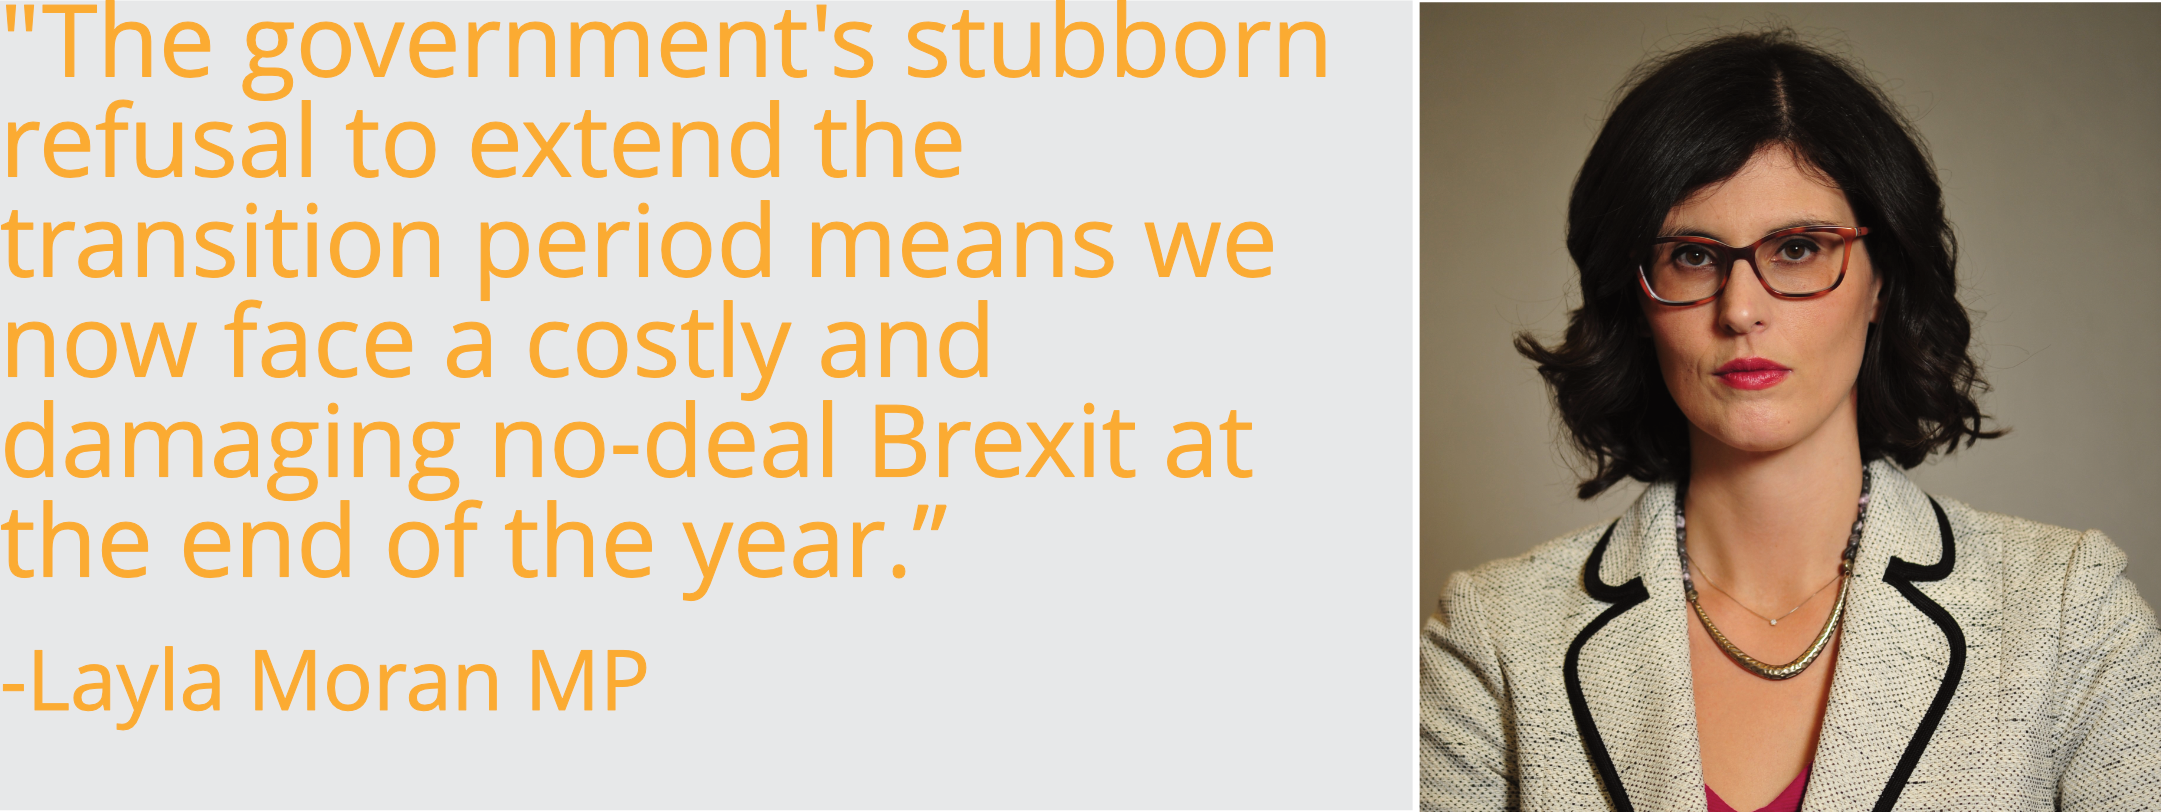 """The government's stubborn refusal to extend the transition period means we now face a costly and damaging no-deal Brexit at the end of the year."